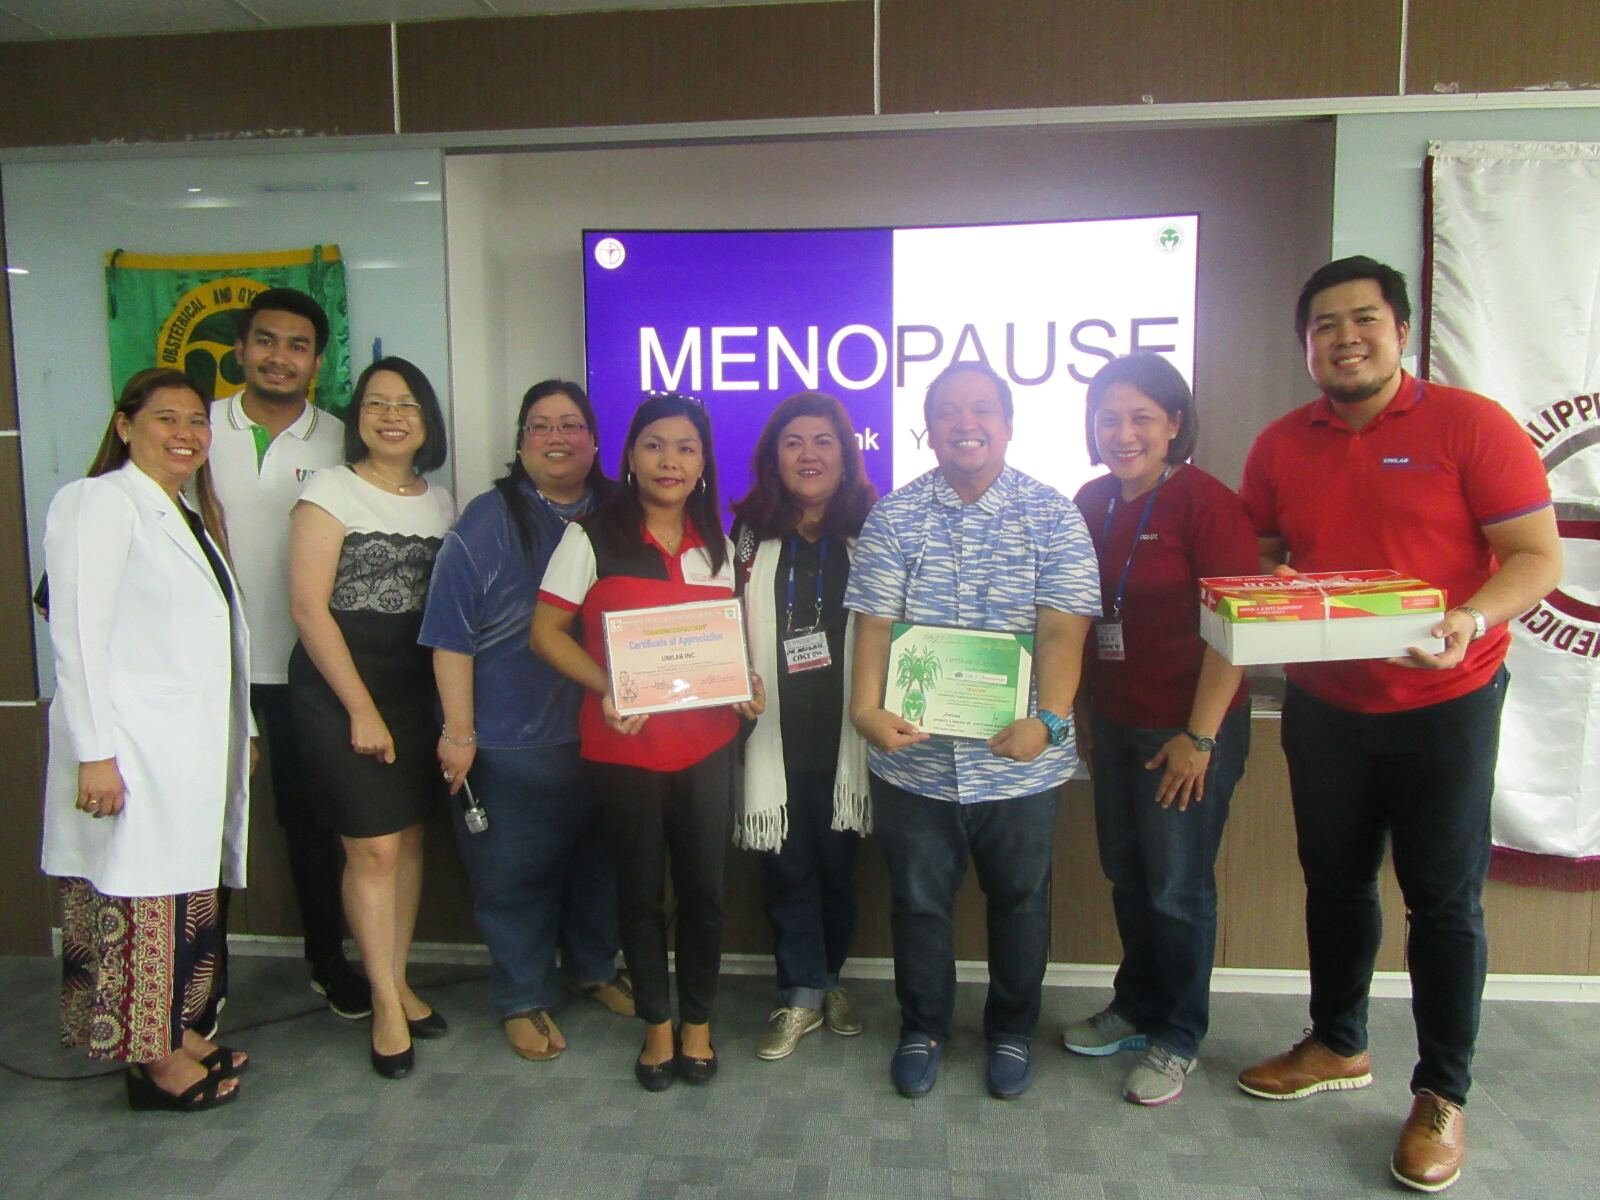 Menopause Day Celebration